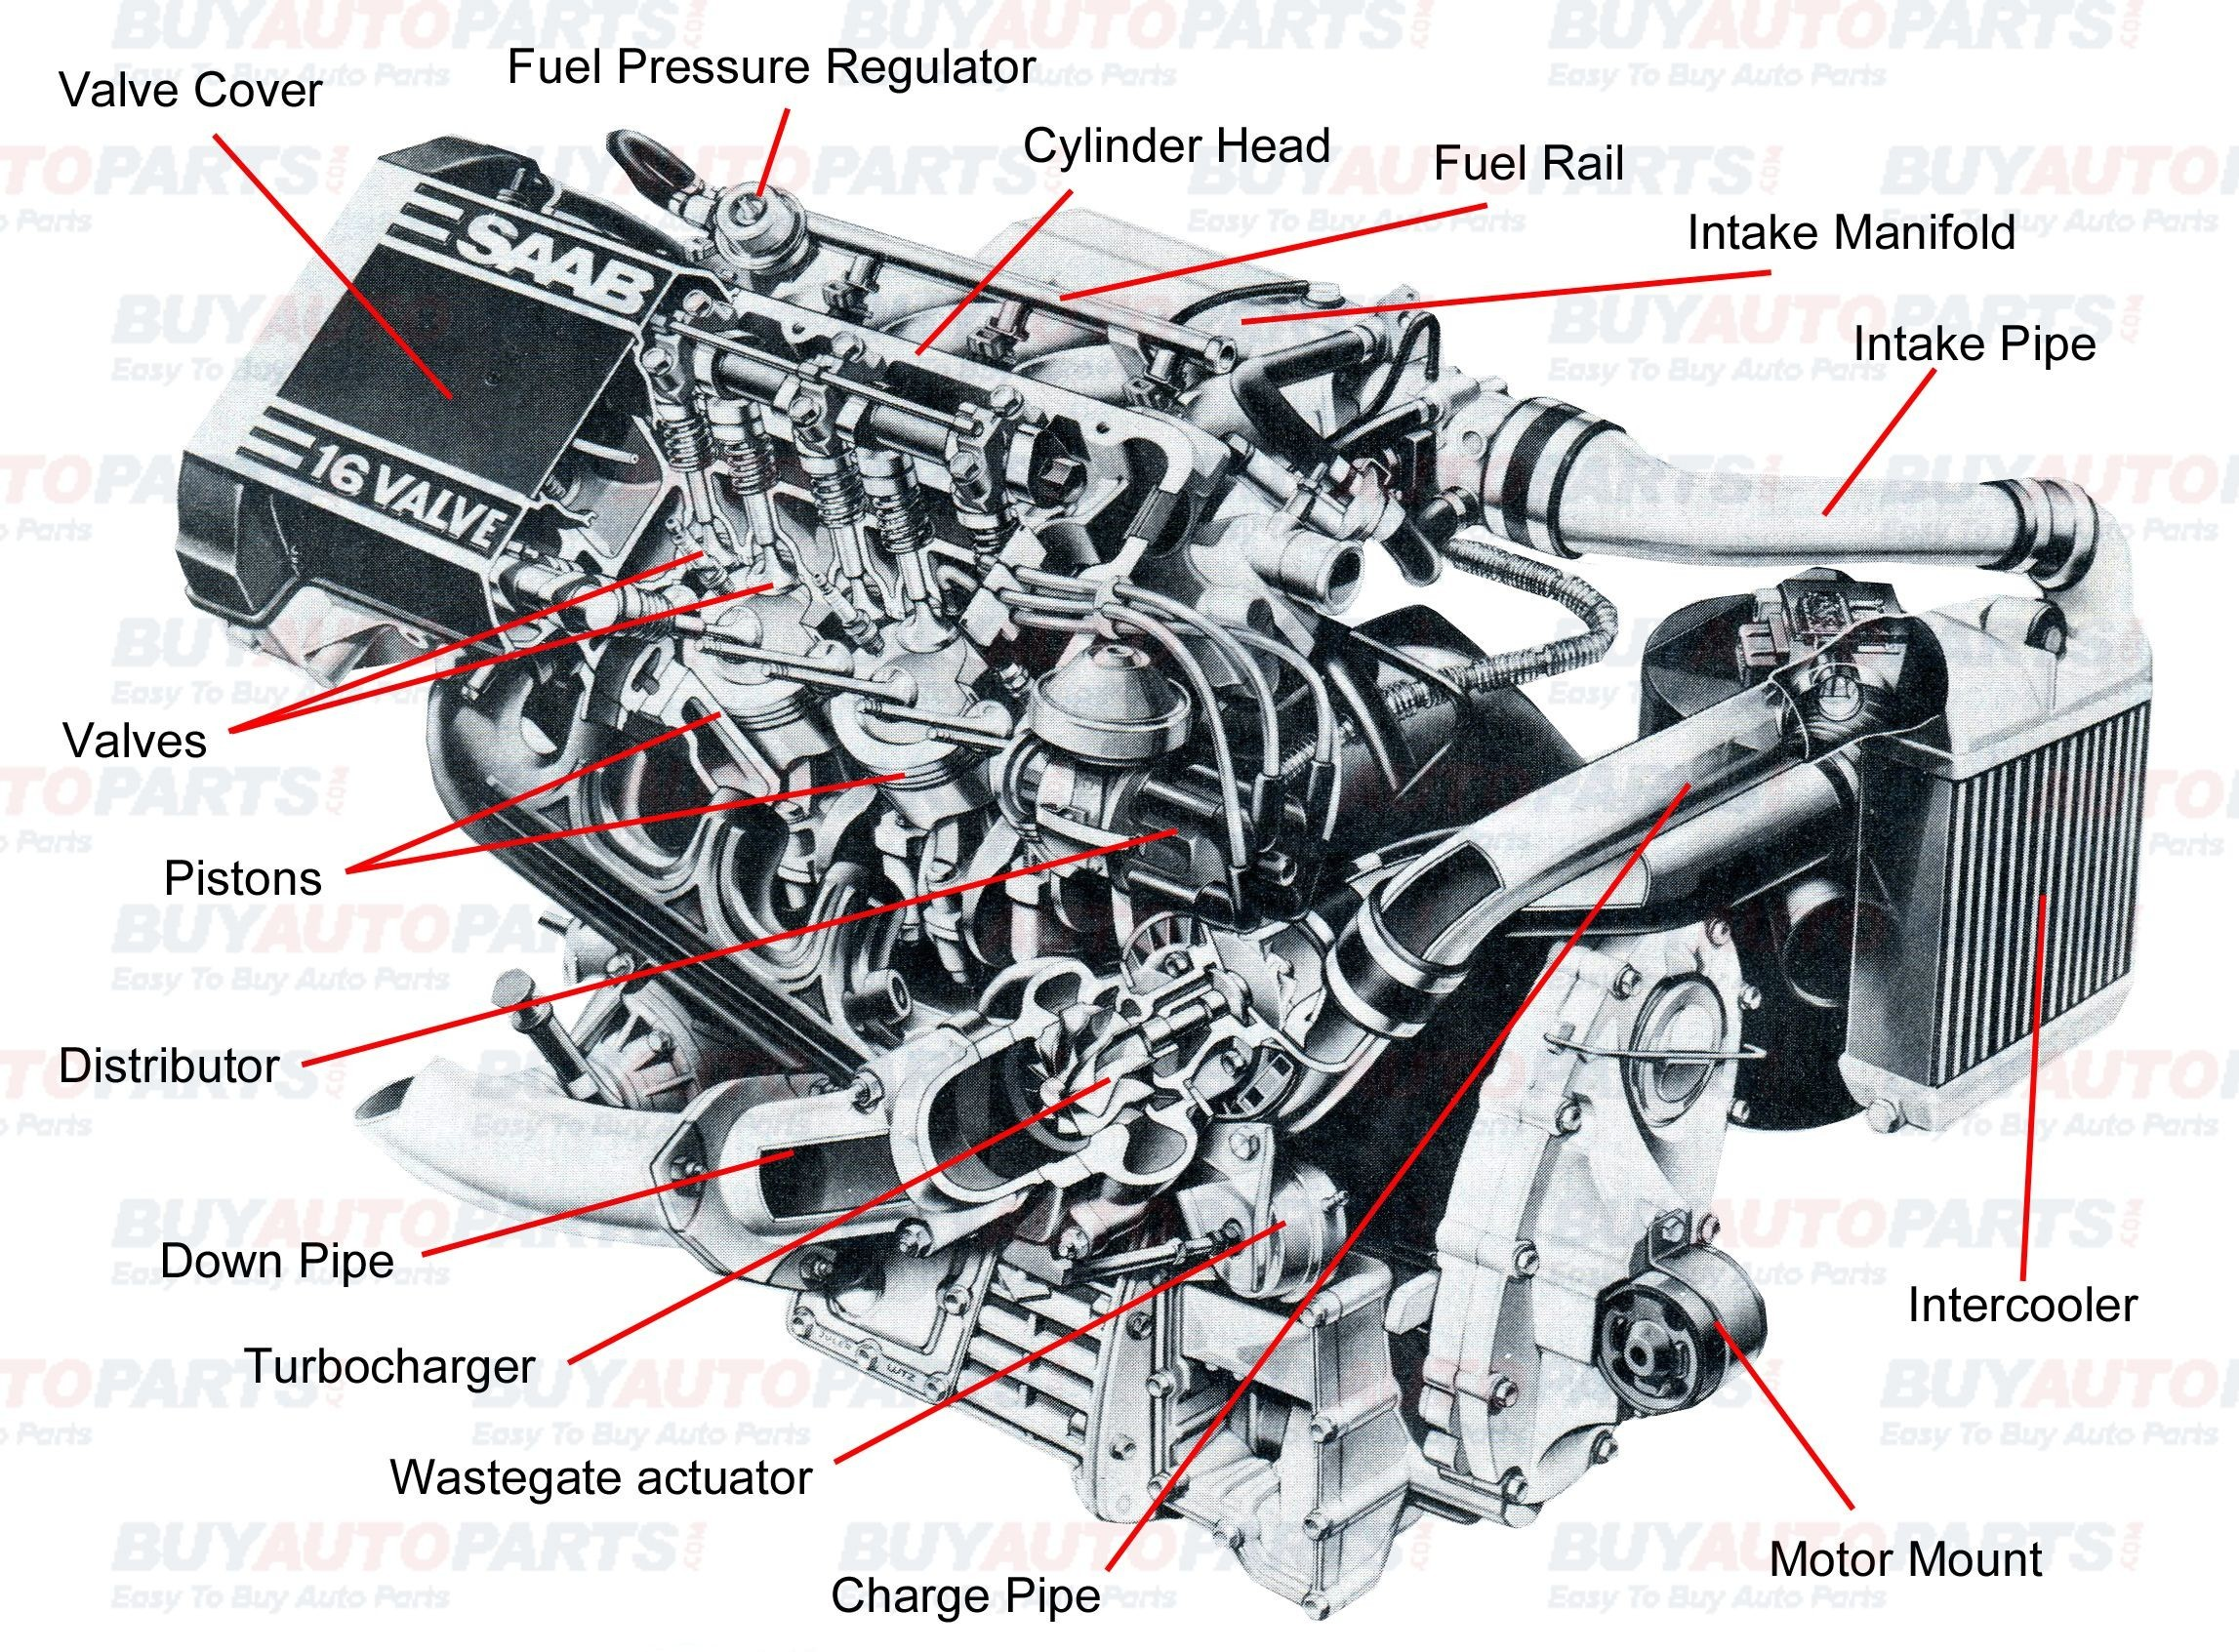 Engine Parts Diagram with Names Car Parts Diagram Names Of Engine Parts Diagram with Names